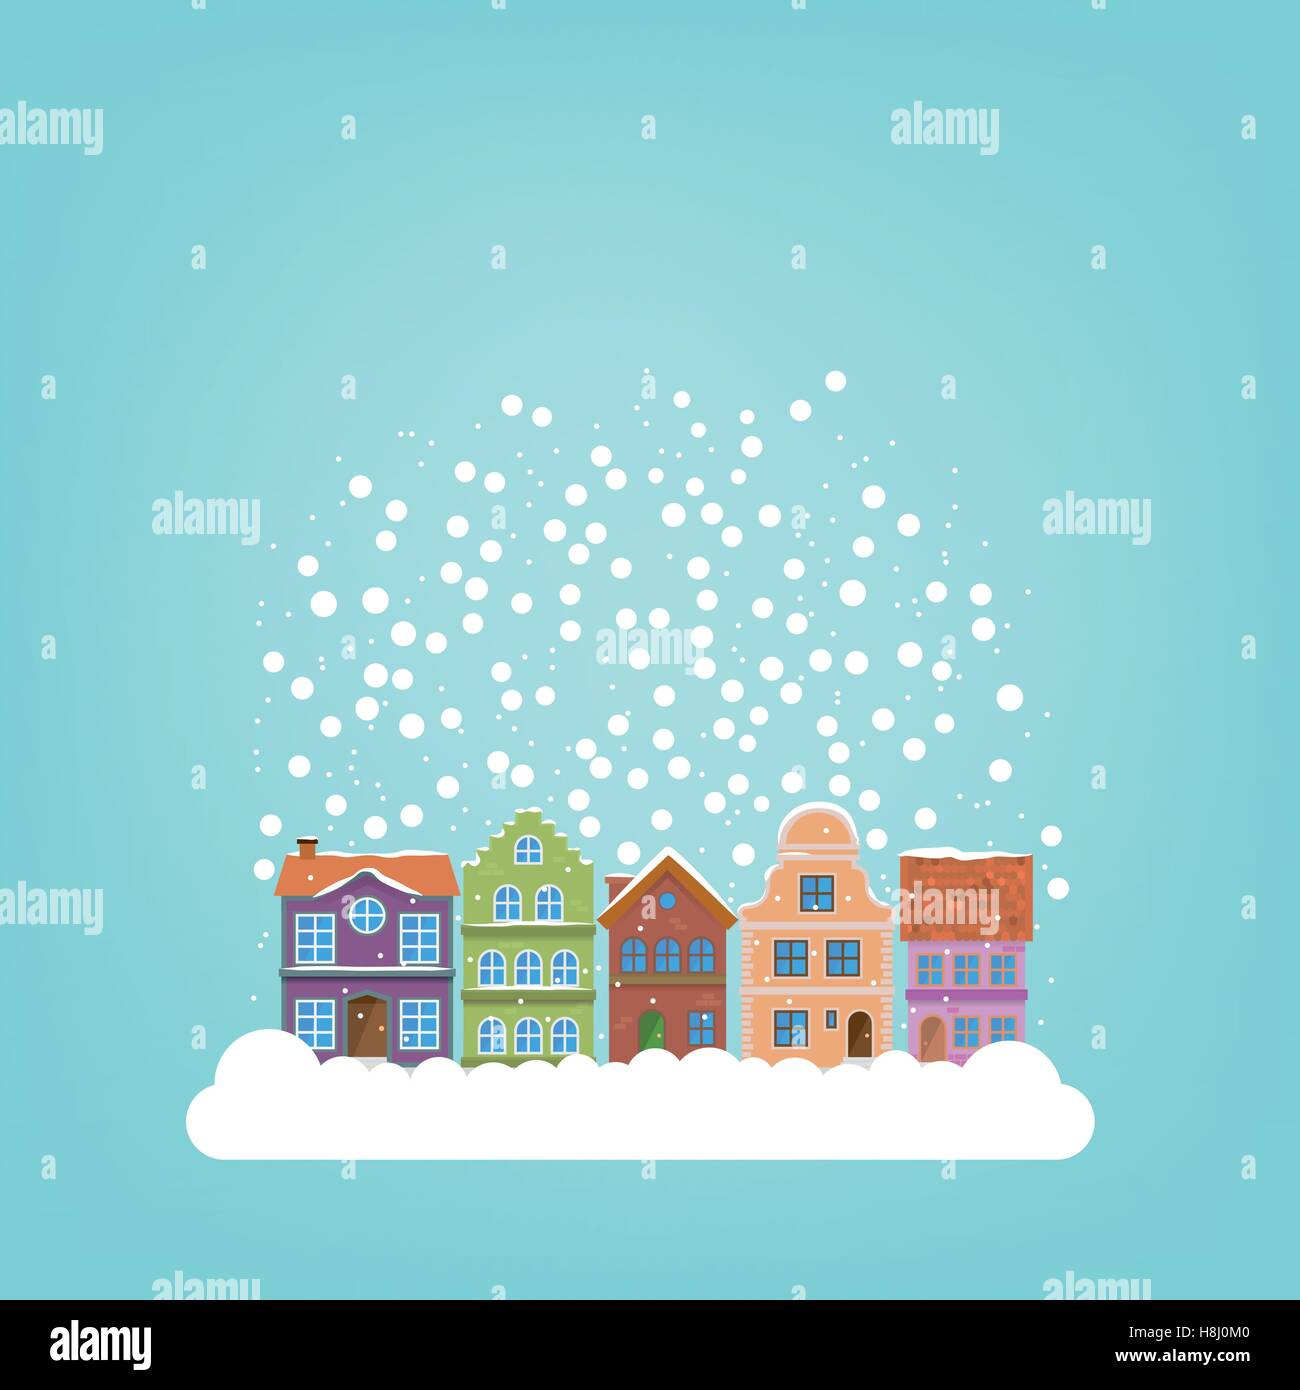 Snow falling on winter village background template for use in snow falling on winter village background template for use in seasonal greetings kristyandbryce Gallery